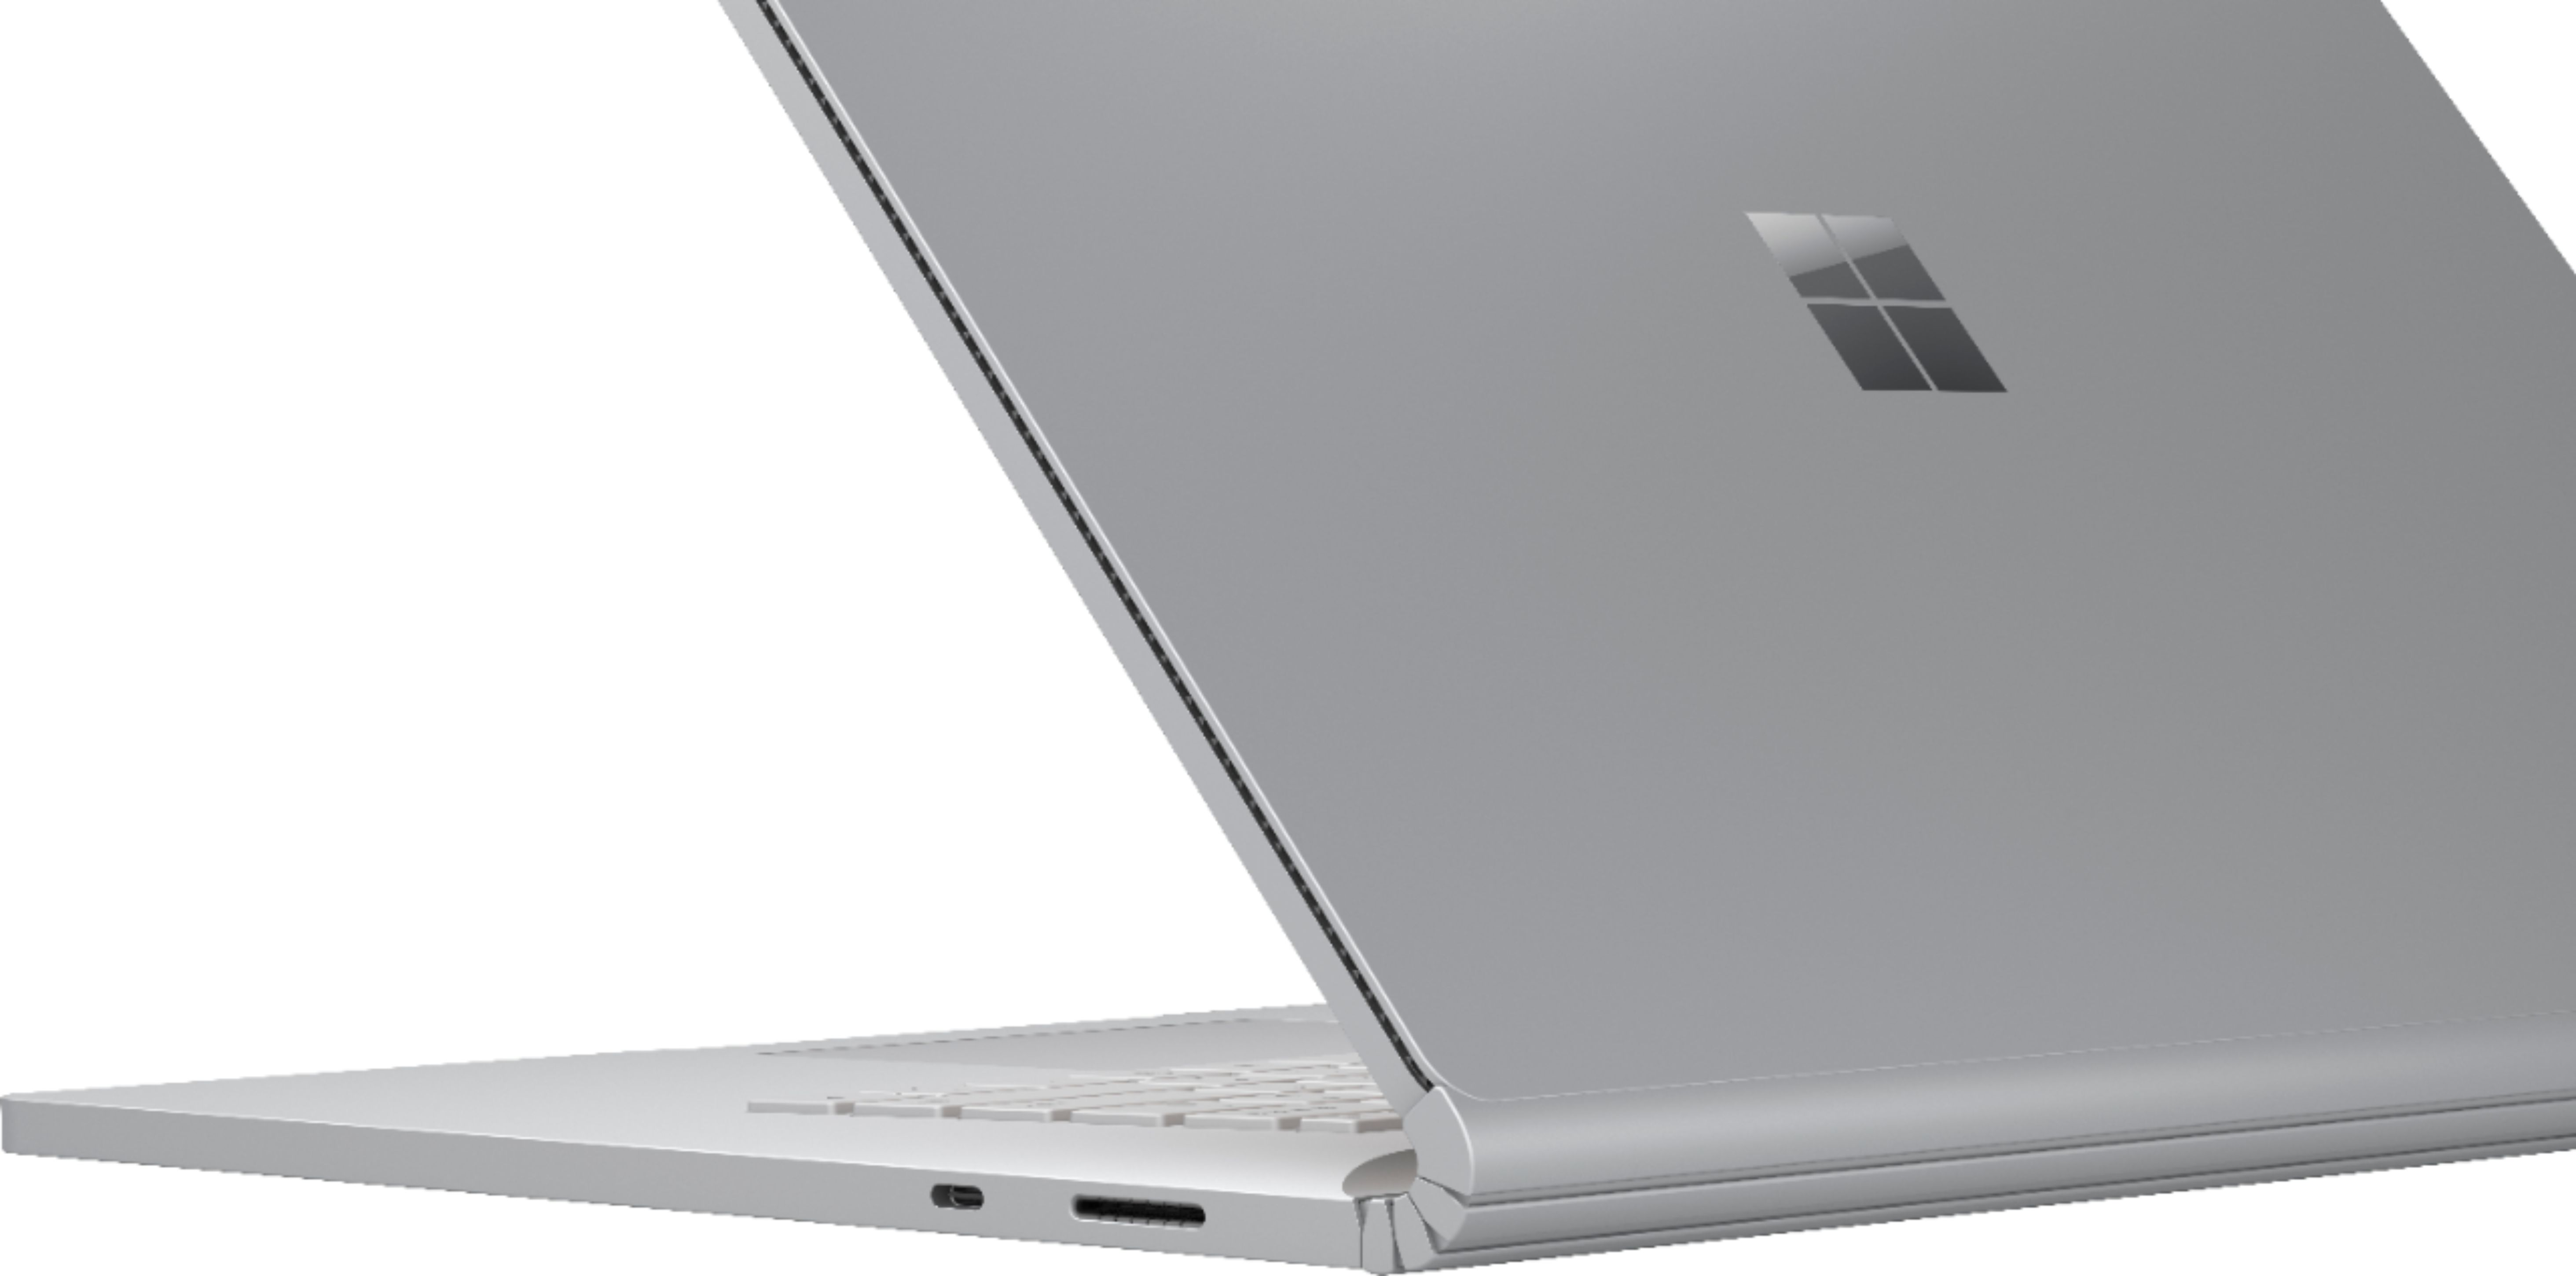 """Alt View Zoom 12. Microsoft - Surface Book 3 15"""" Touch-Screen PixelSense™ - 2-in-1 Laptop - Intel Core i7 - 32GB Memory - 512GB SSD - Platinum."""